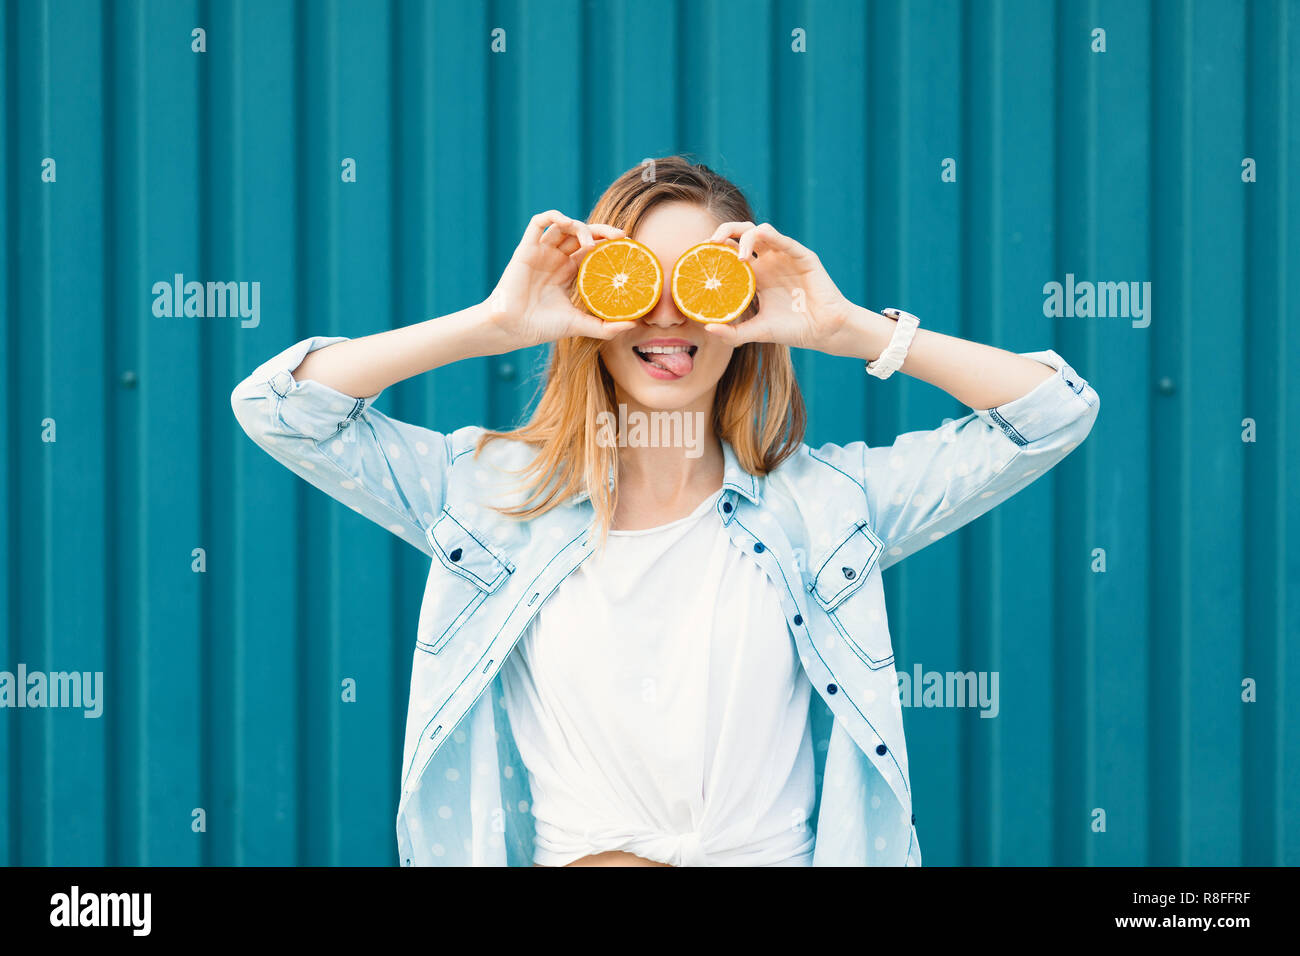 Carefree young beautiful girl using two halfs of oranges instead of glasses over her eyes, tongue out, over blue background. - Stock Image